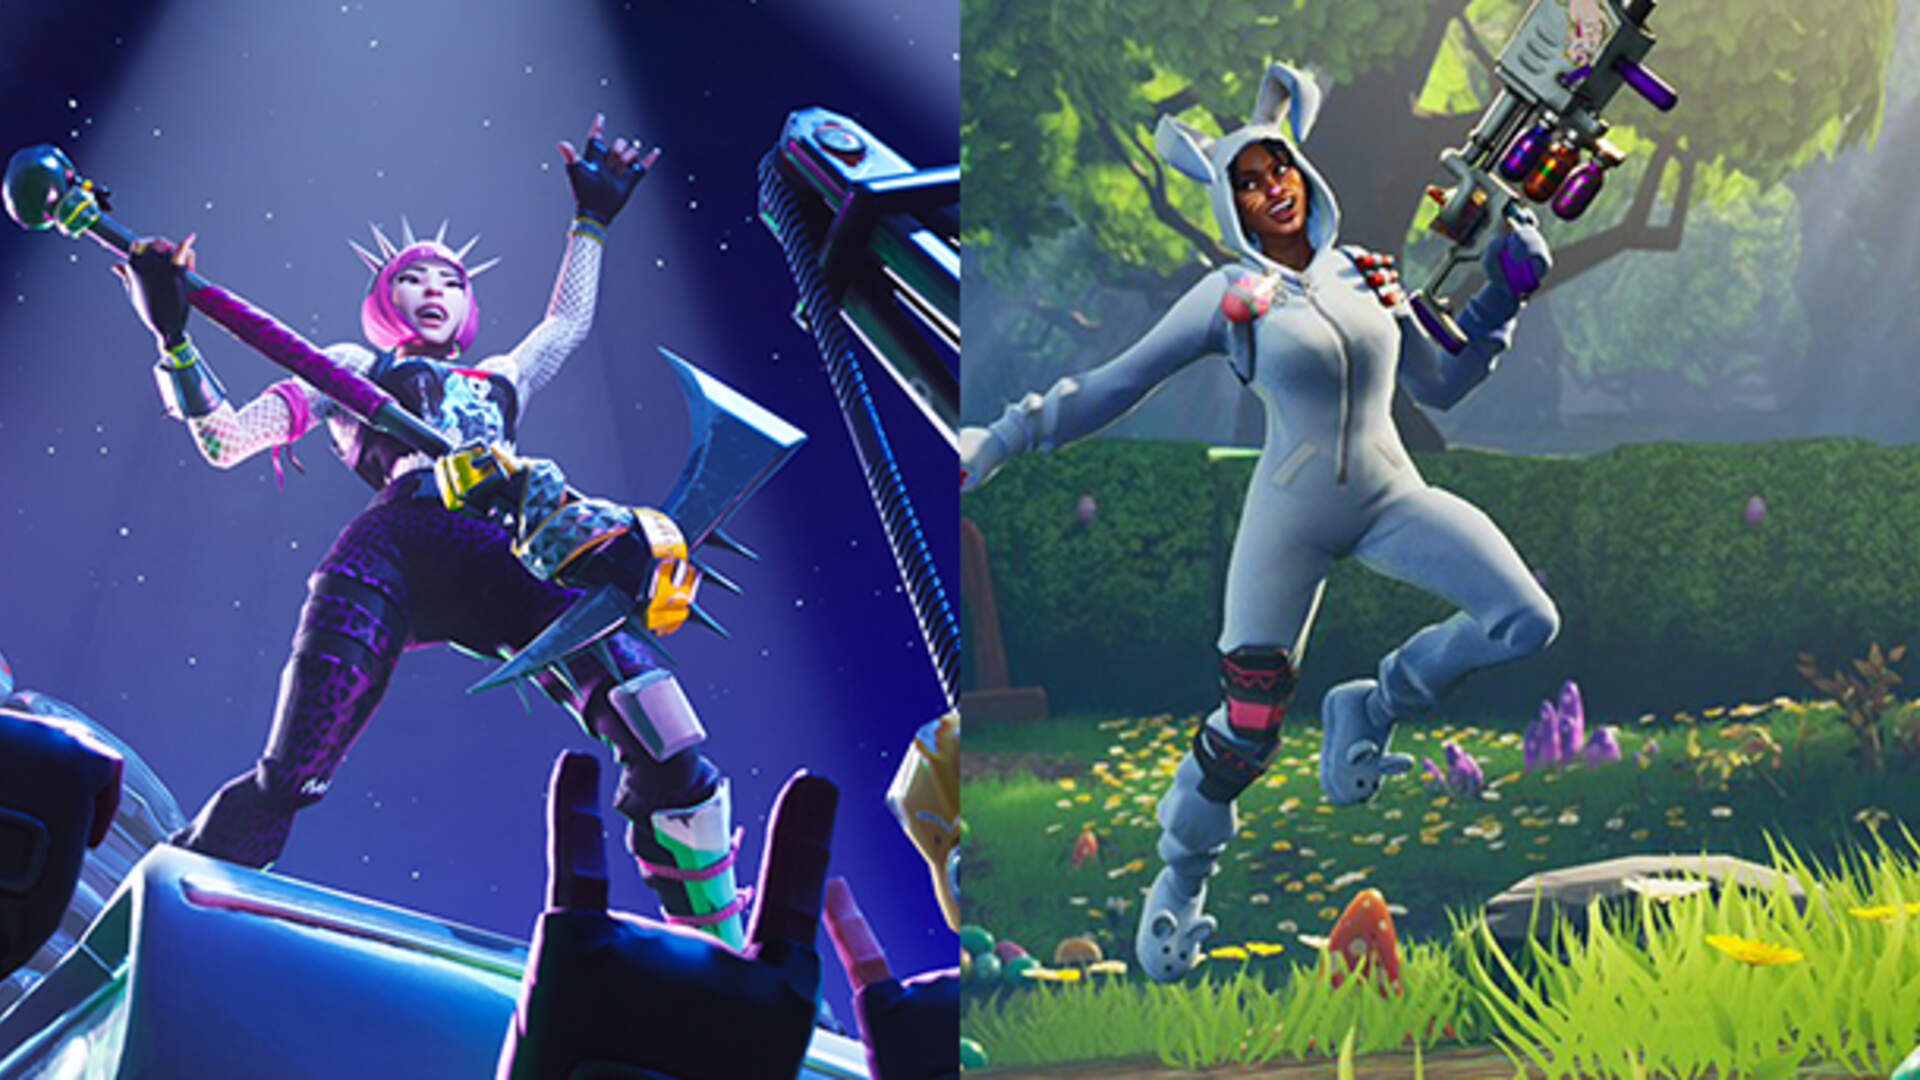 Fortnite Took 138 Days to Hit 100 Million Downloads and $160 Million in Revenue on iOS